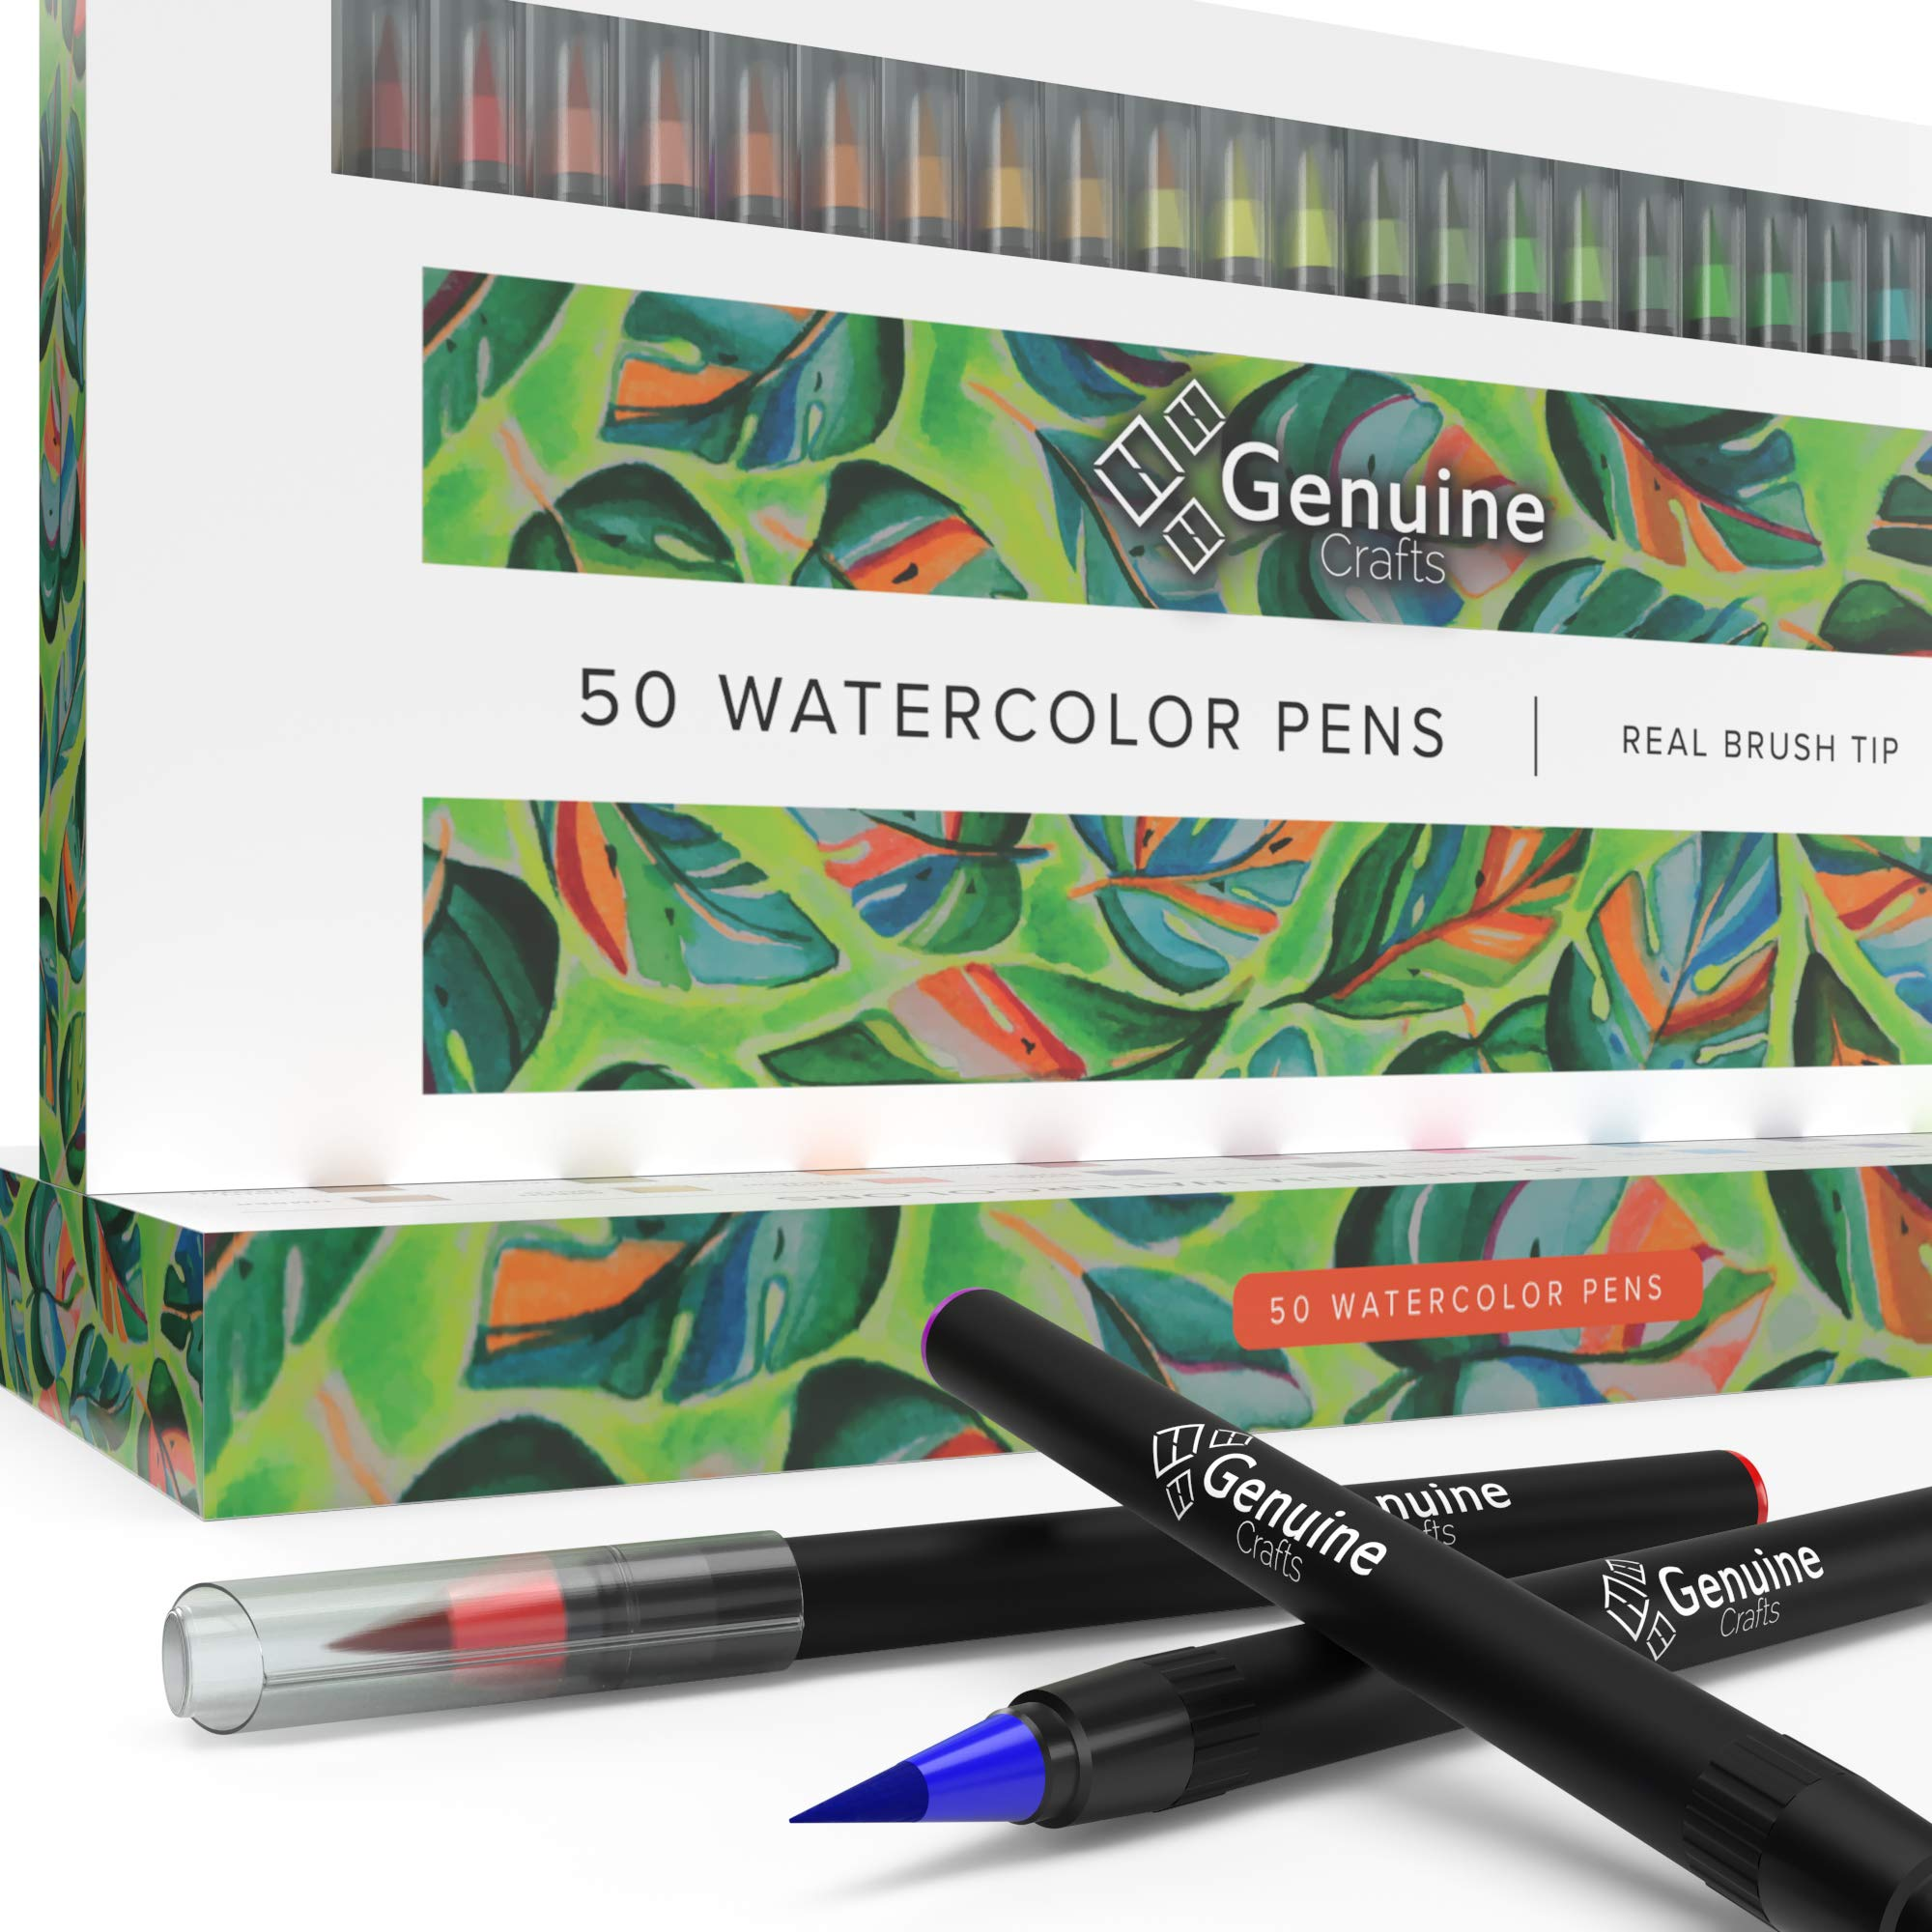 Watercolor Brush Pens by Genuine Crafts - Set of 50 Premium Colors - Real Brush Tips - No Mess Storage Case - Washable Nontoxic Markers - Portable Painting by Genuine Crafts